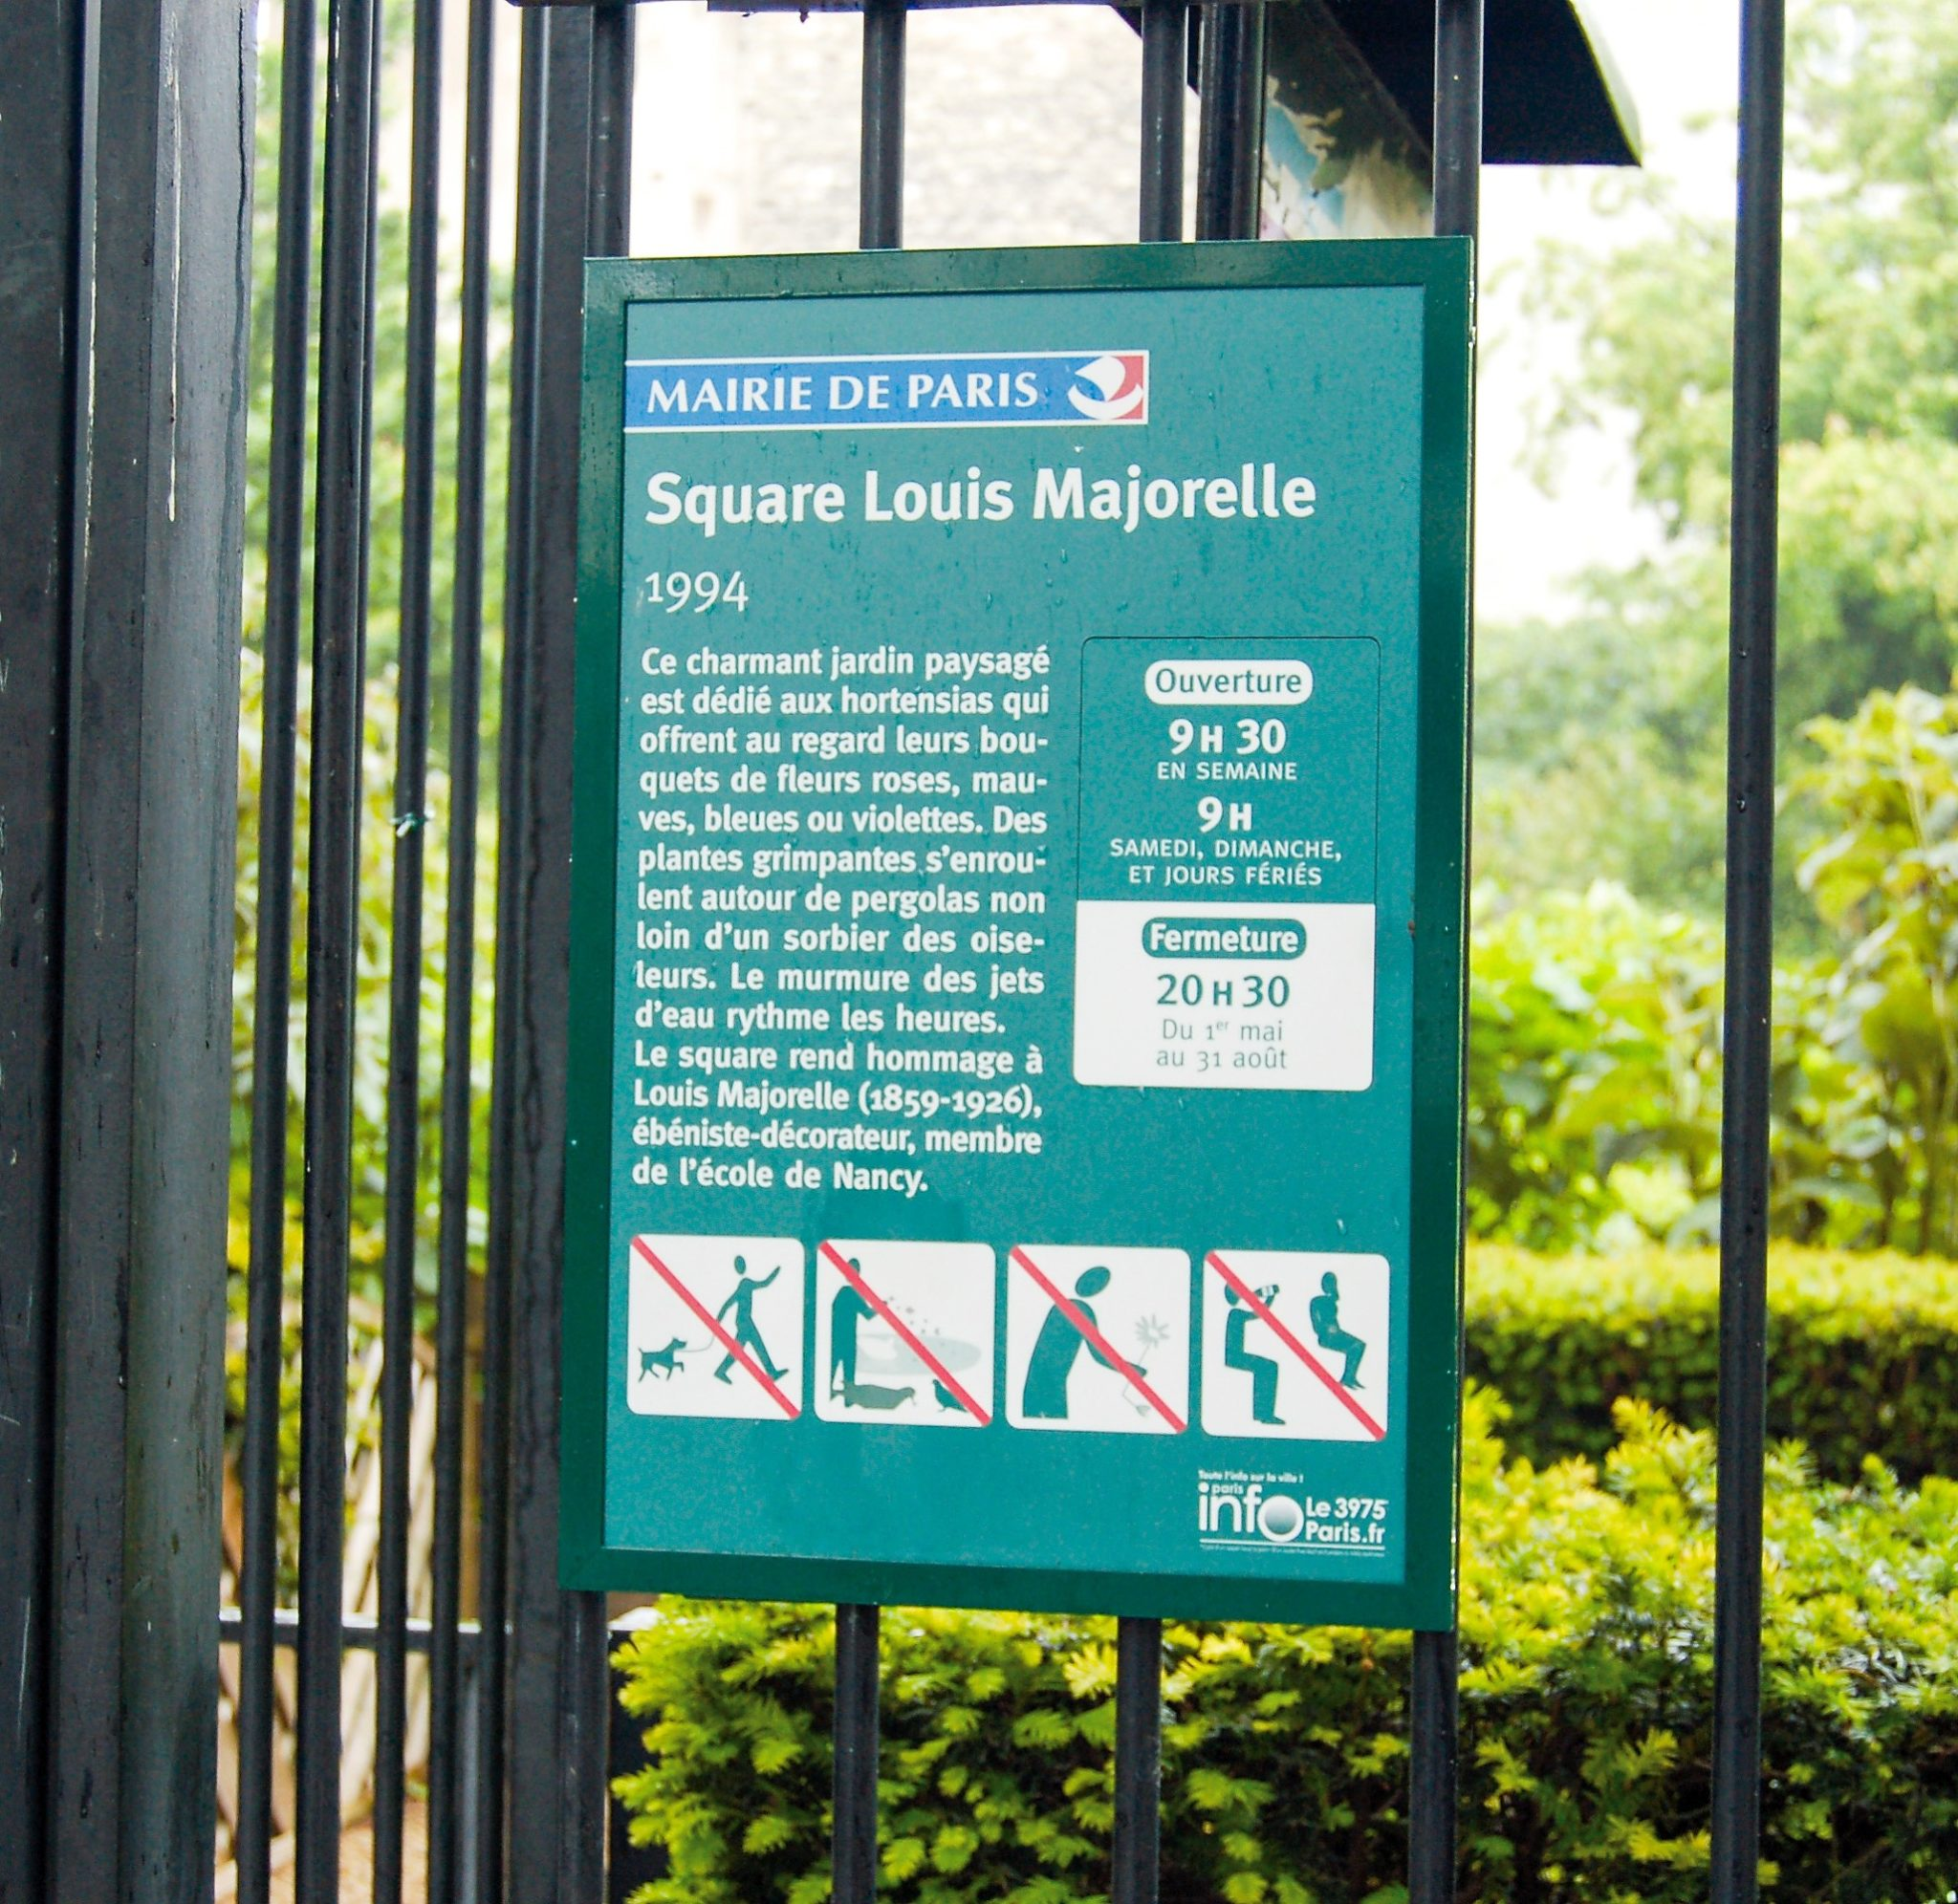 HPL Tourist signage by town hall of Paris